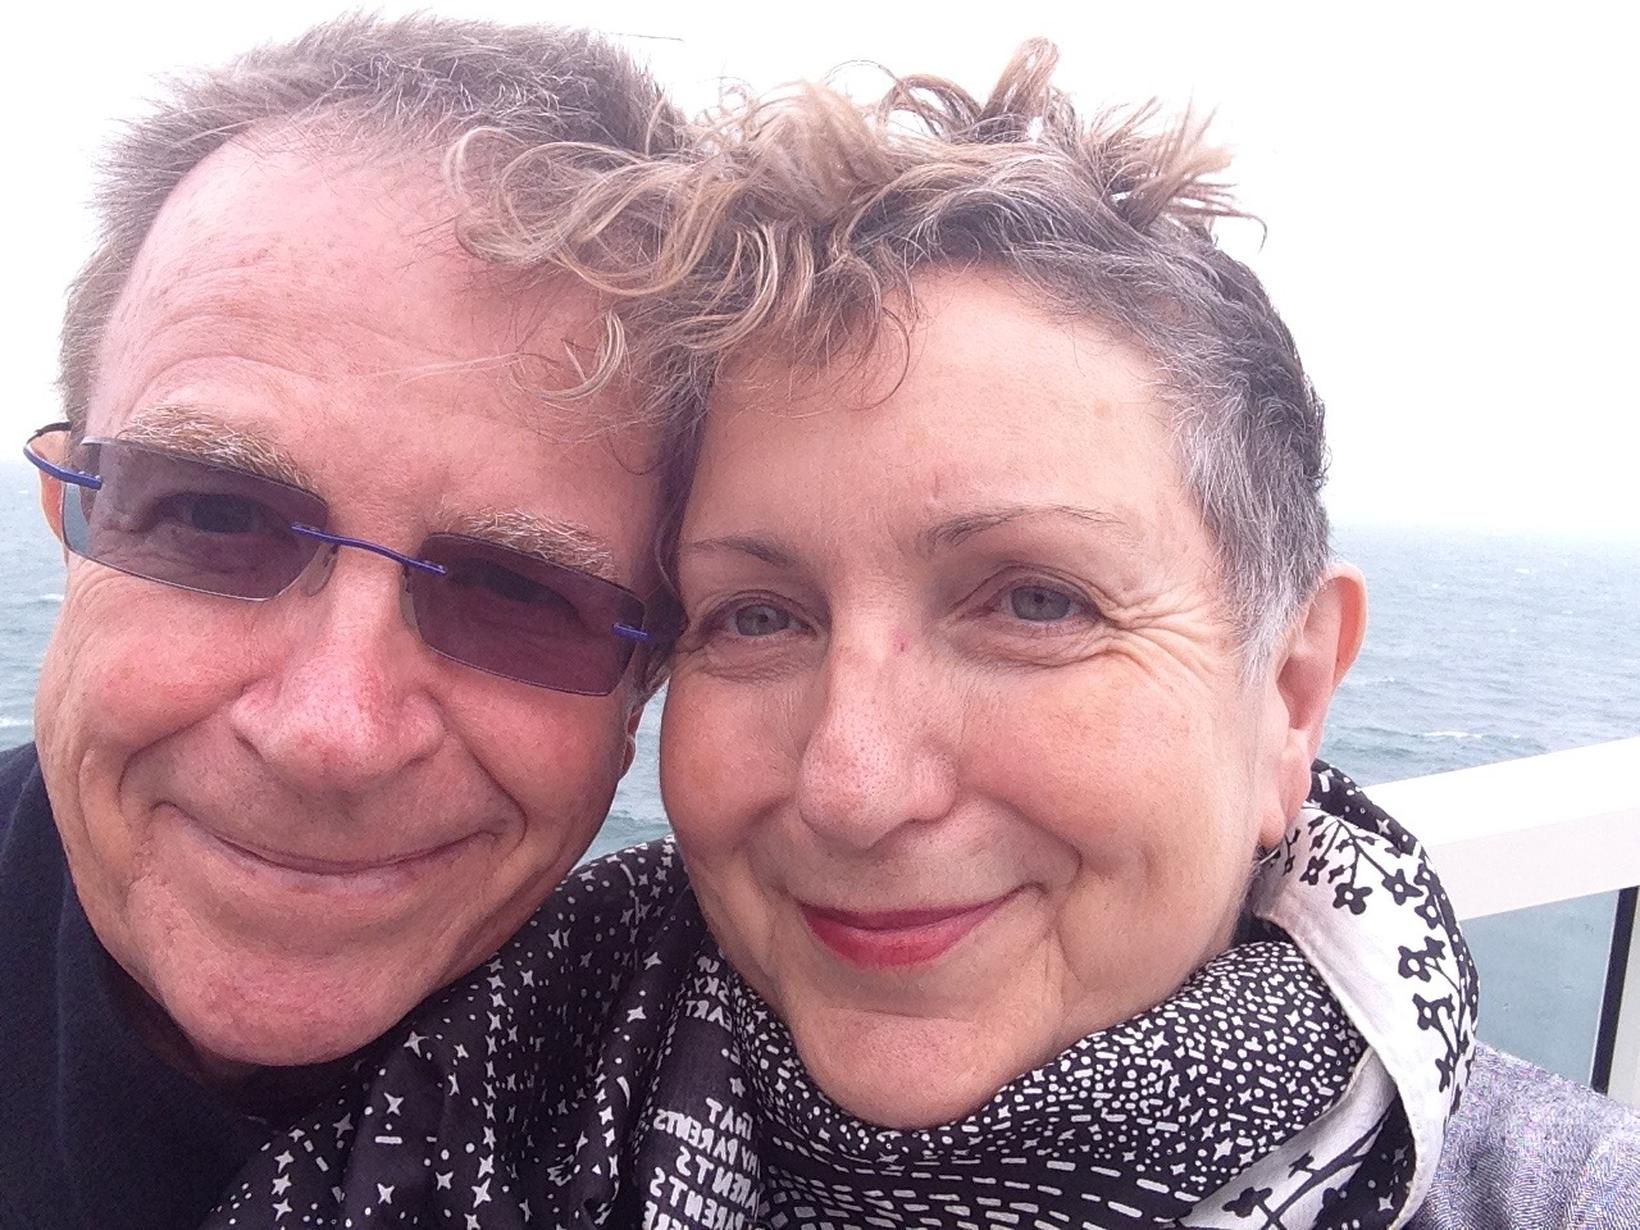 Kathy & Nigel from Huddersfield, United Kingdom